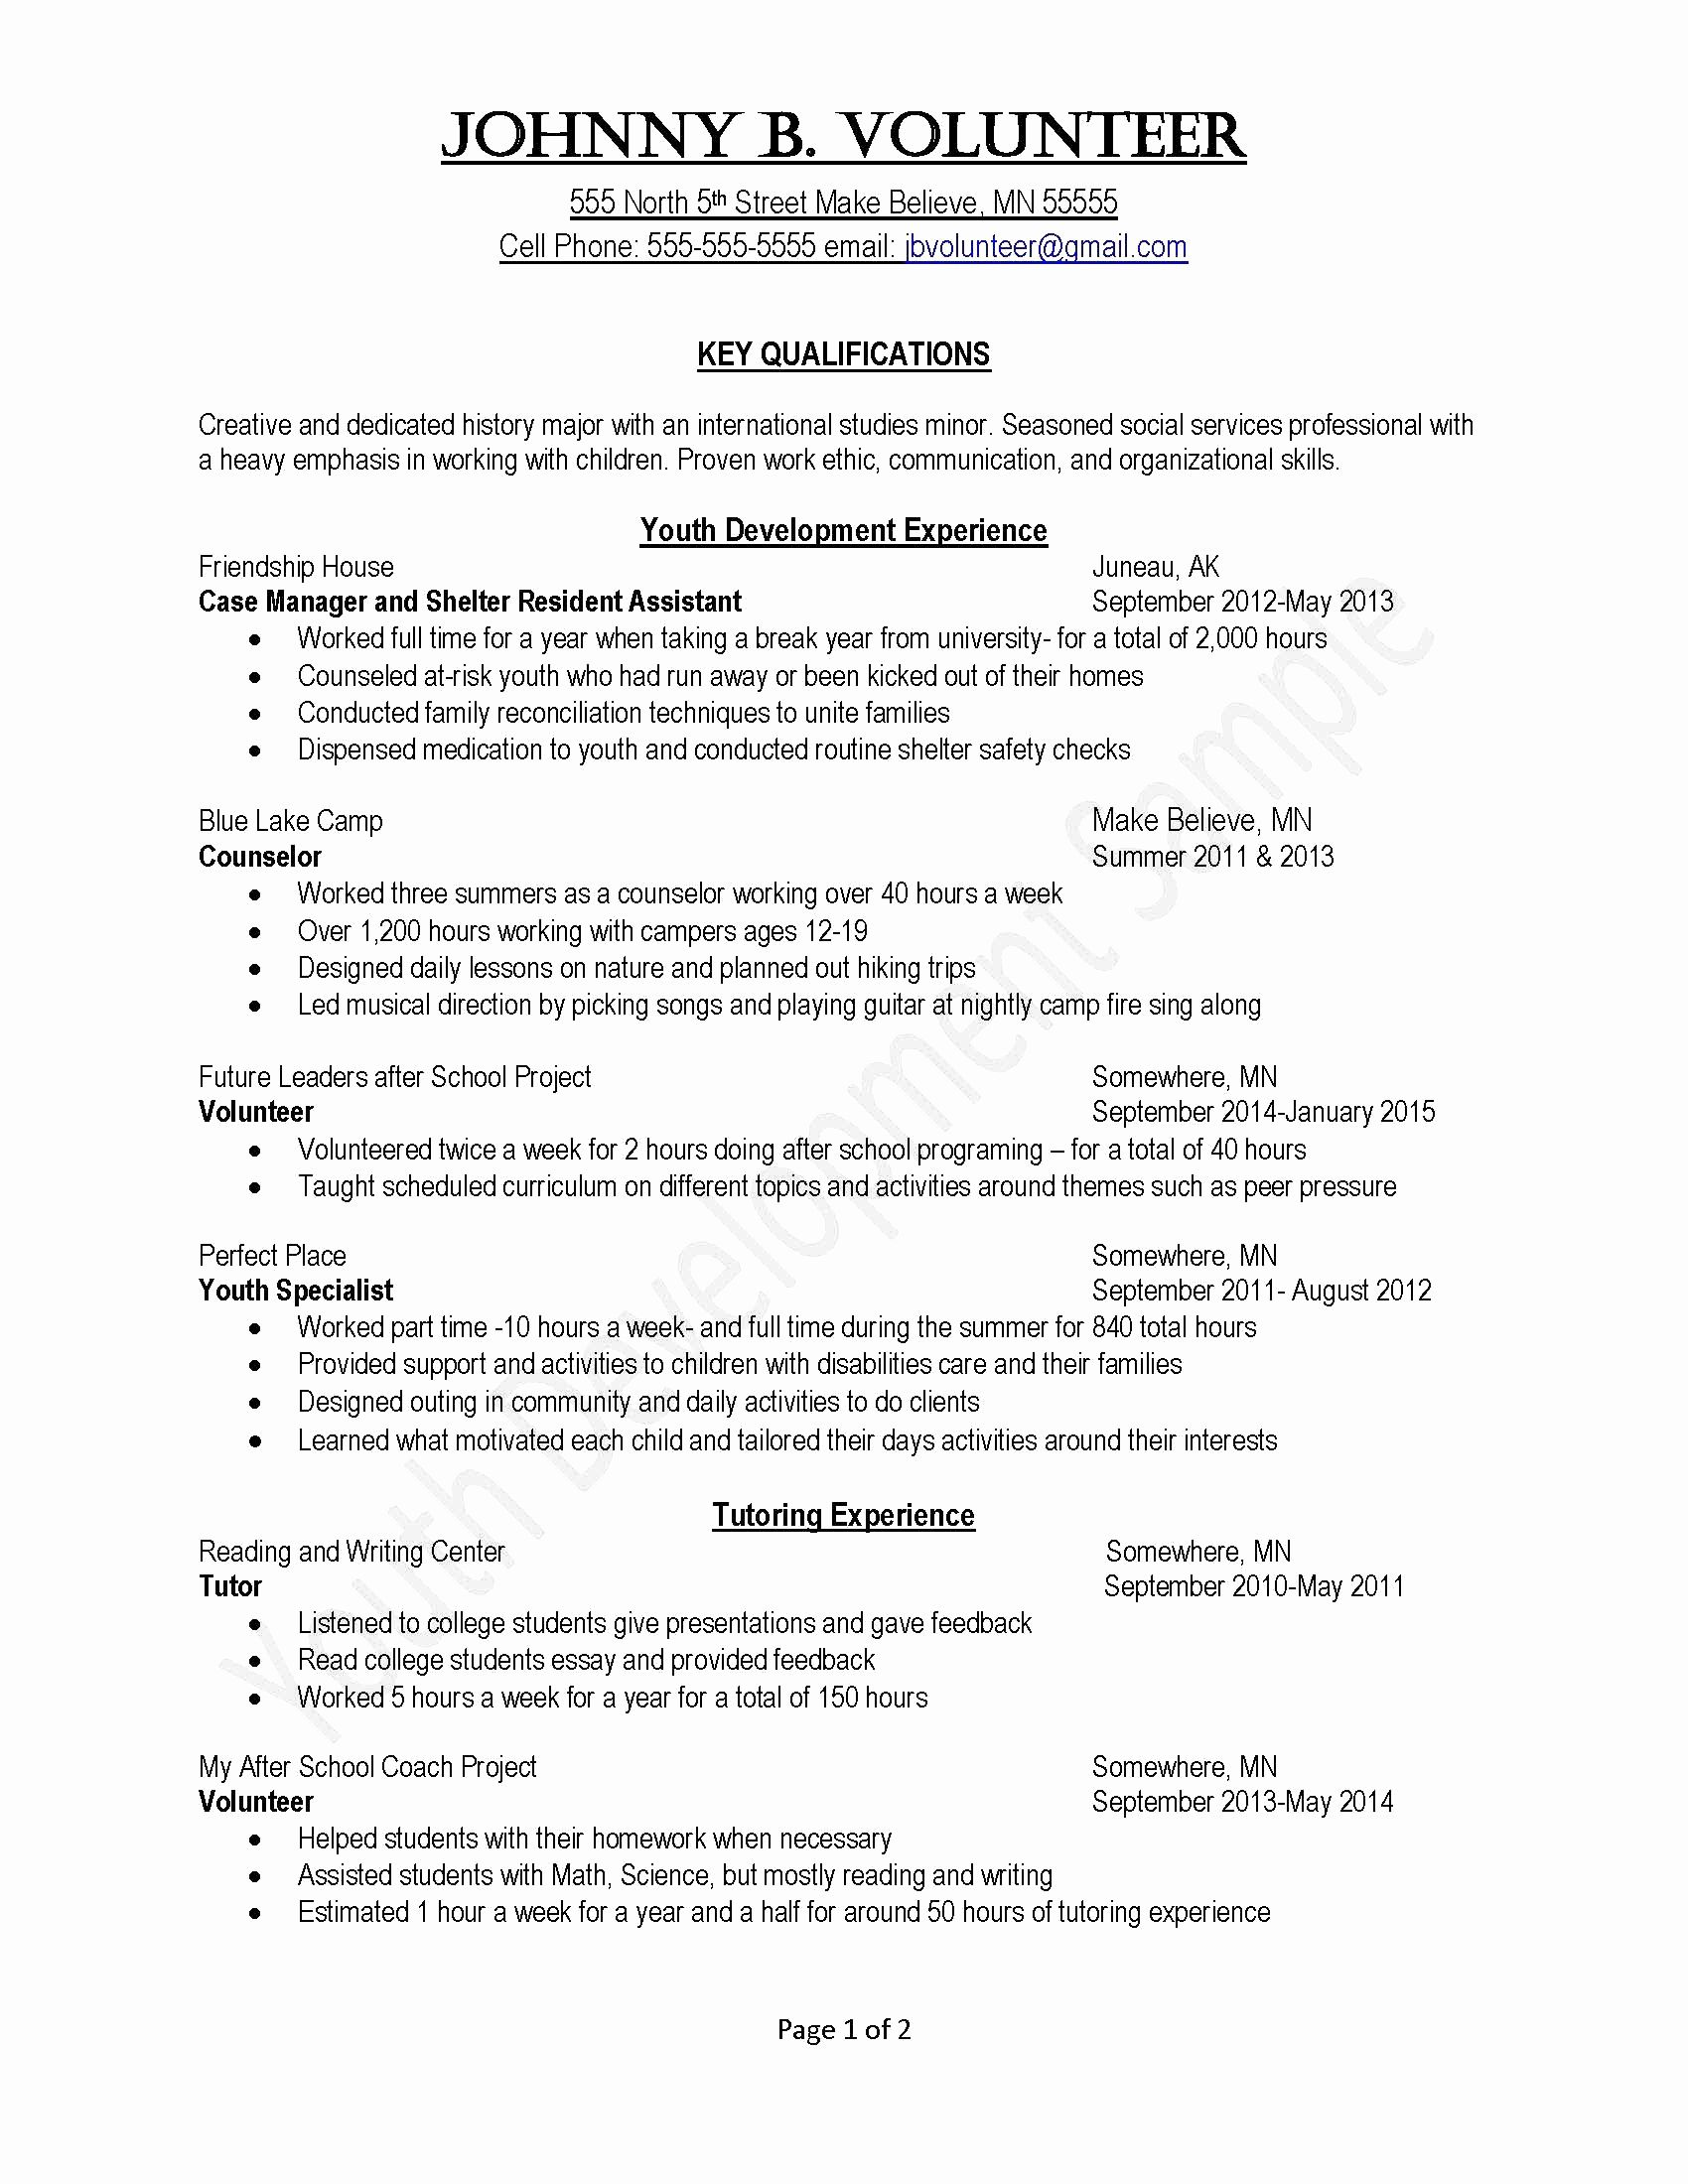 Cover Letter Template Variation 2 Cover Letter Template